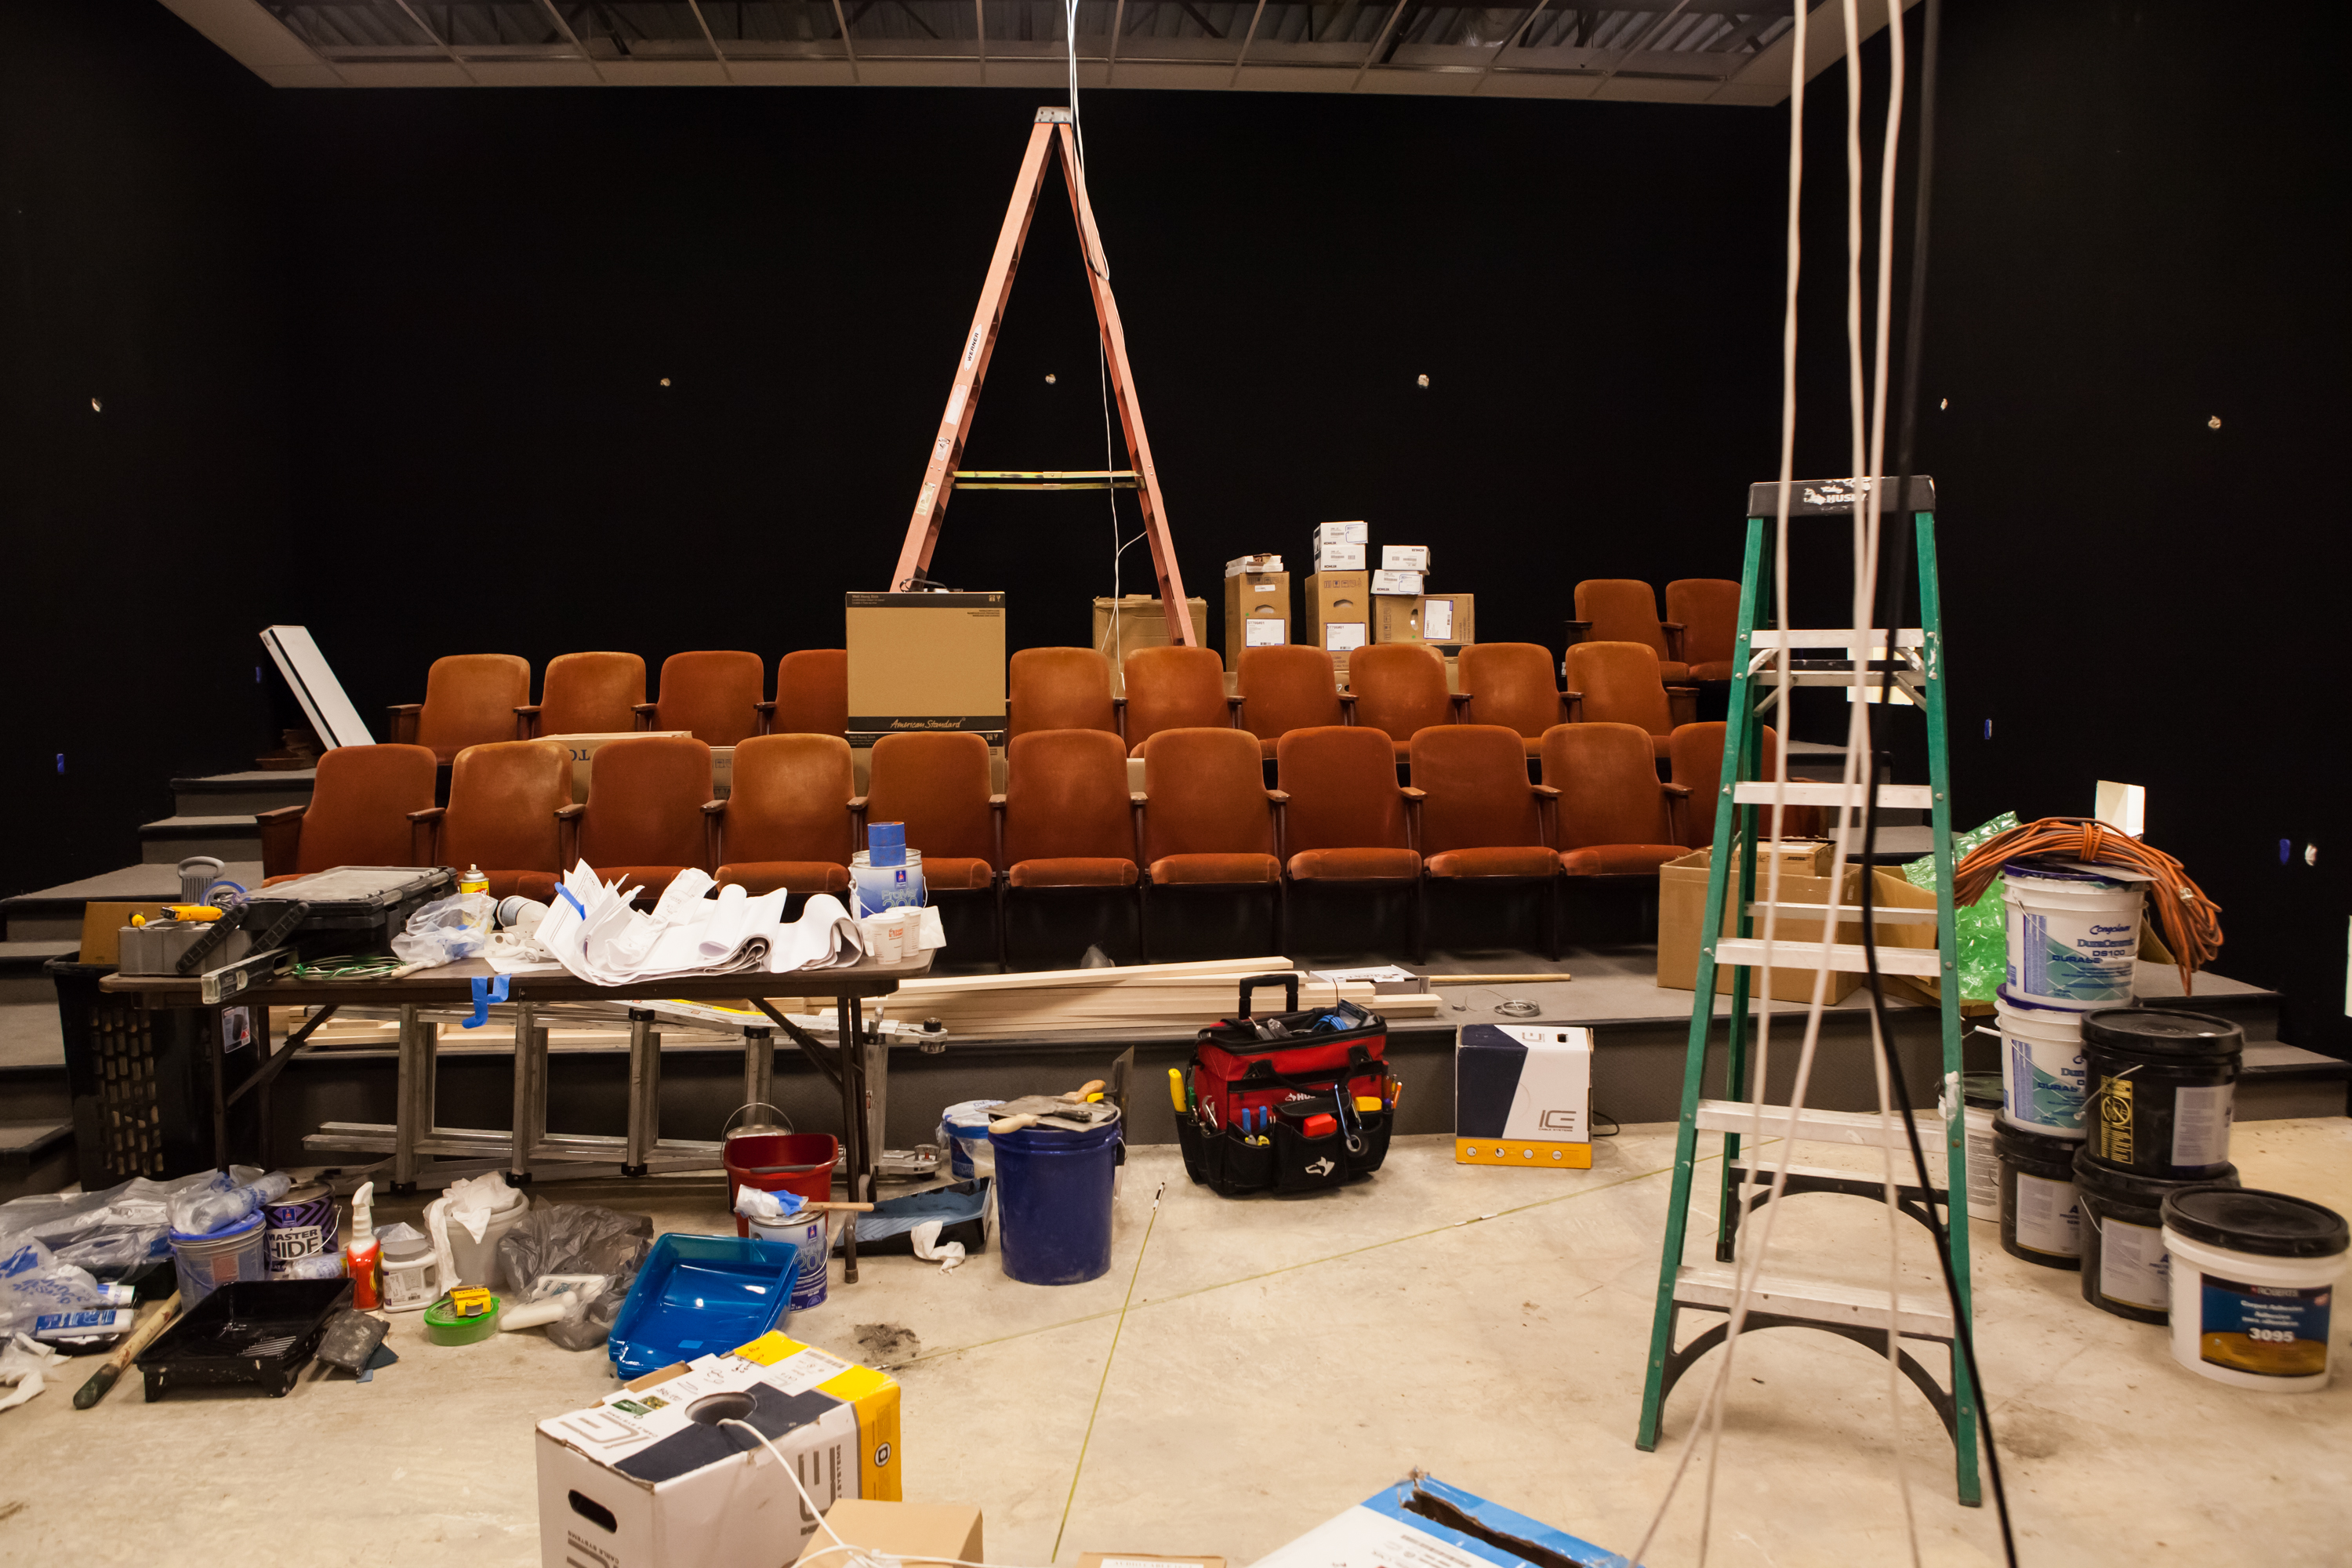 Installing the theatre seats